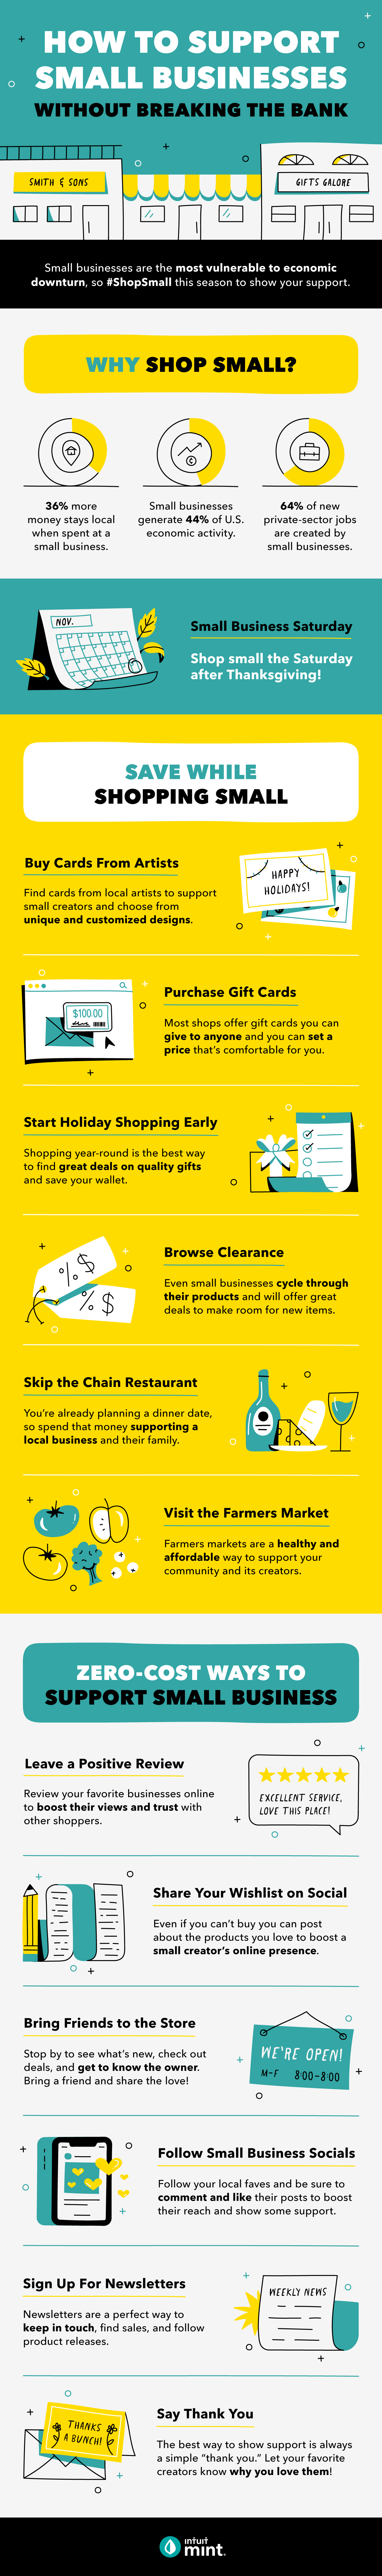 Infographic of tips on how to support small businesses.